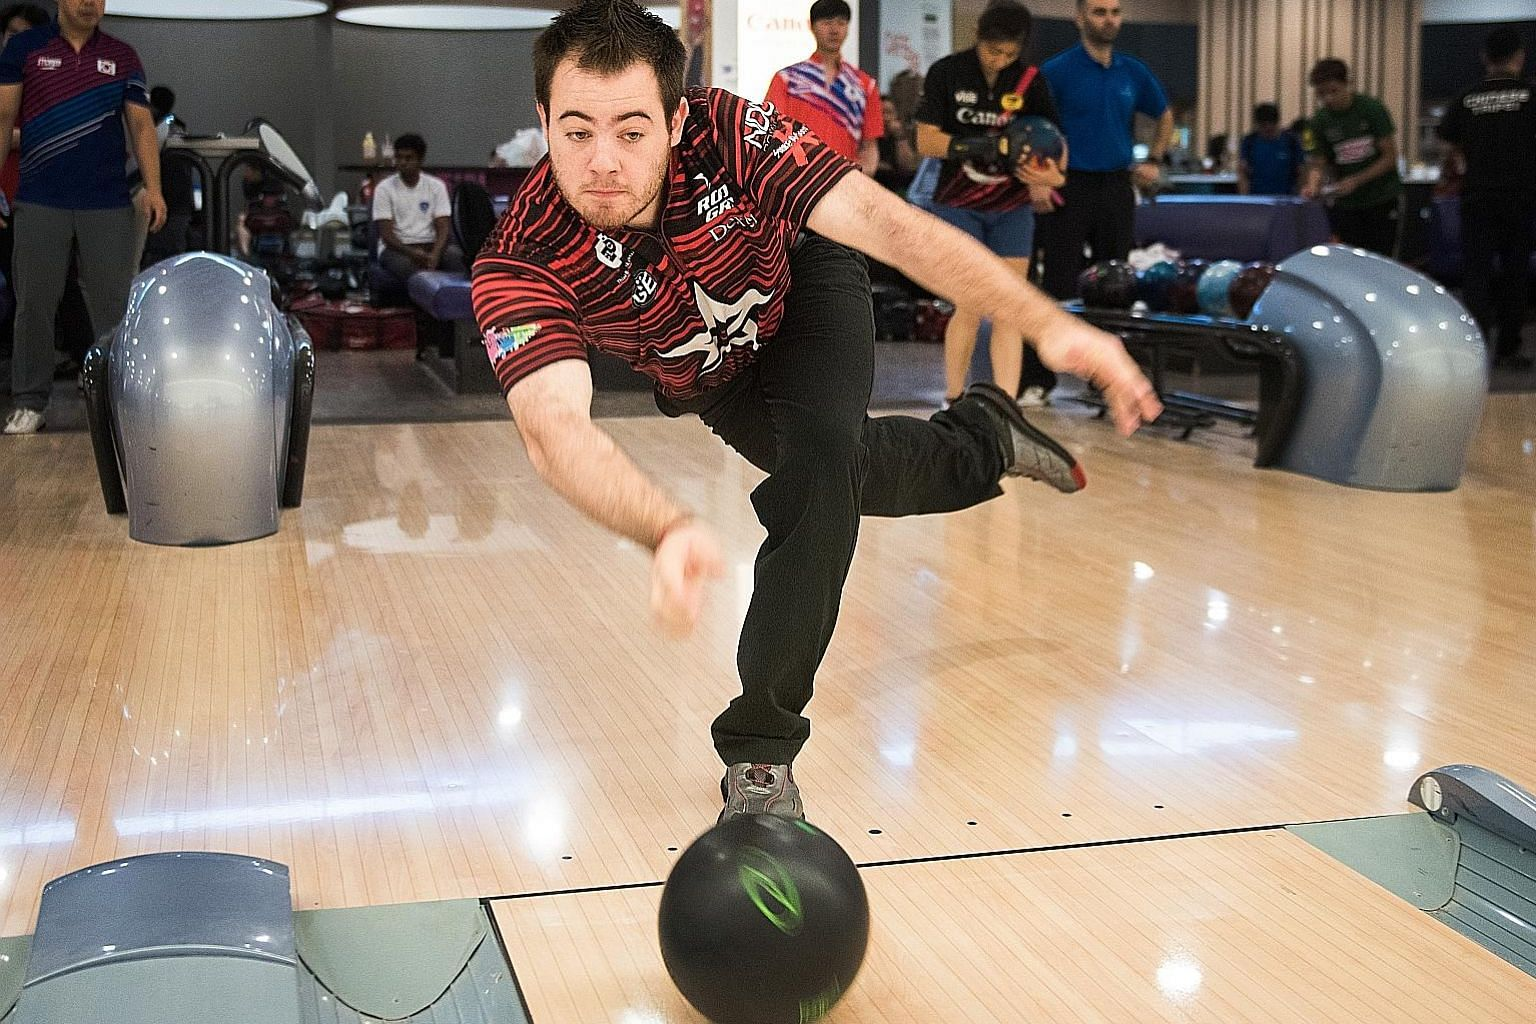 American Anthony Simonsen, the world's 12th-ranked bowler, delivering the ball with his right hand after a double-handed approach. He will be competing in this weekend's Singapore Open.